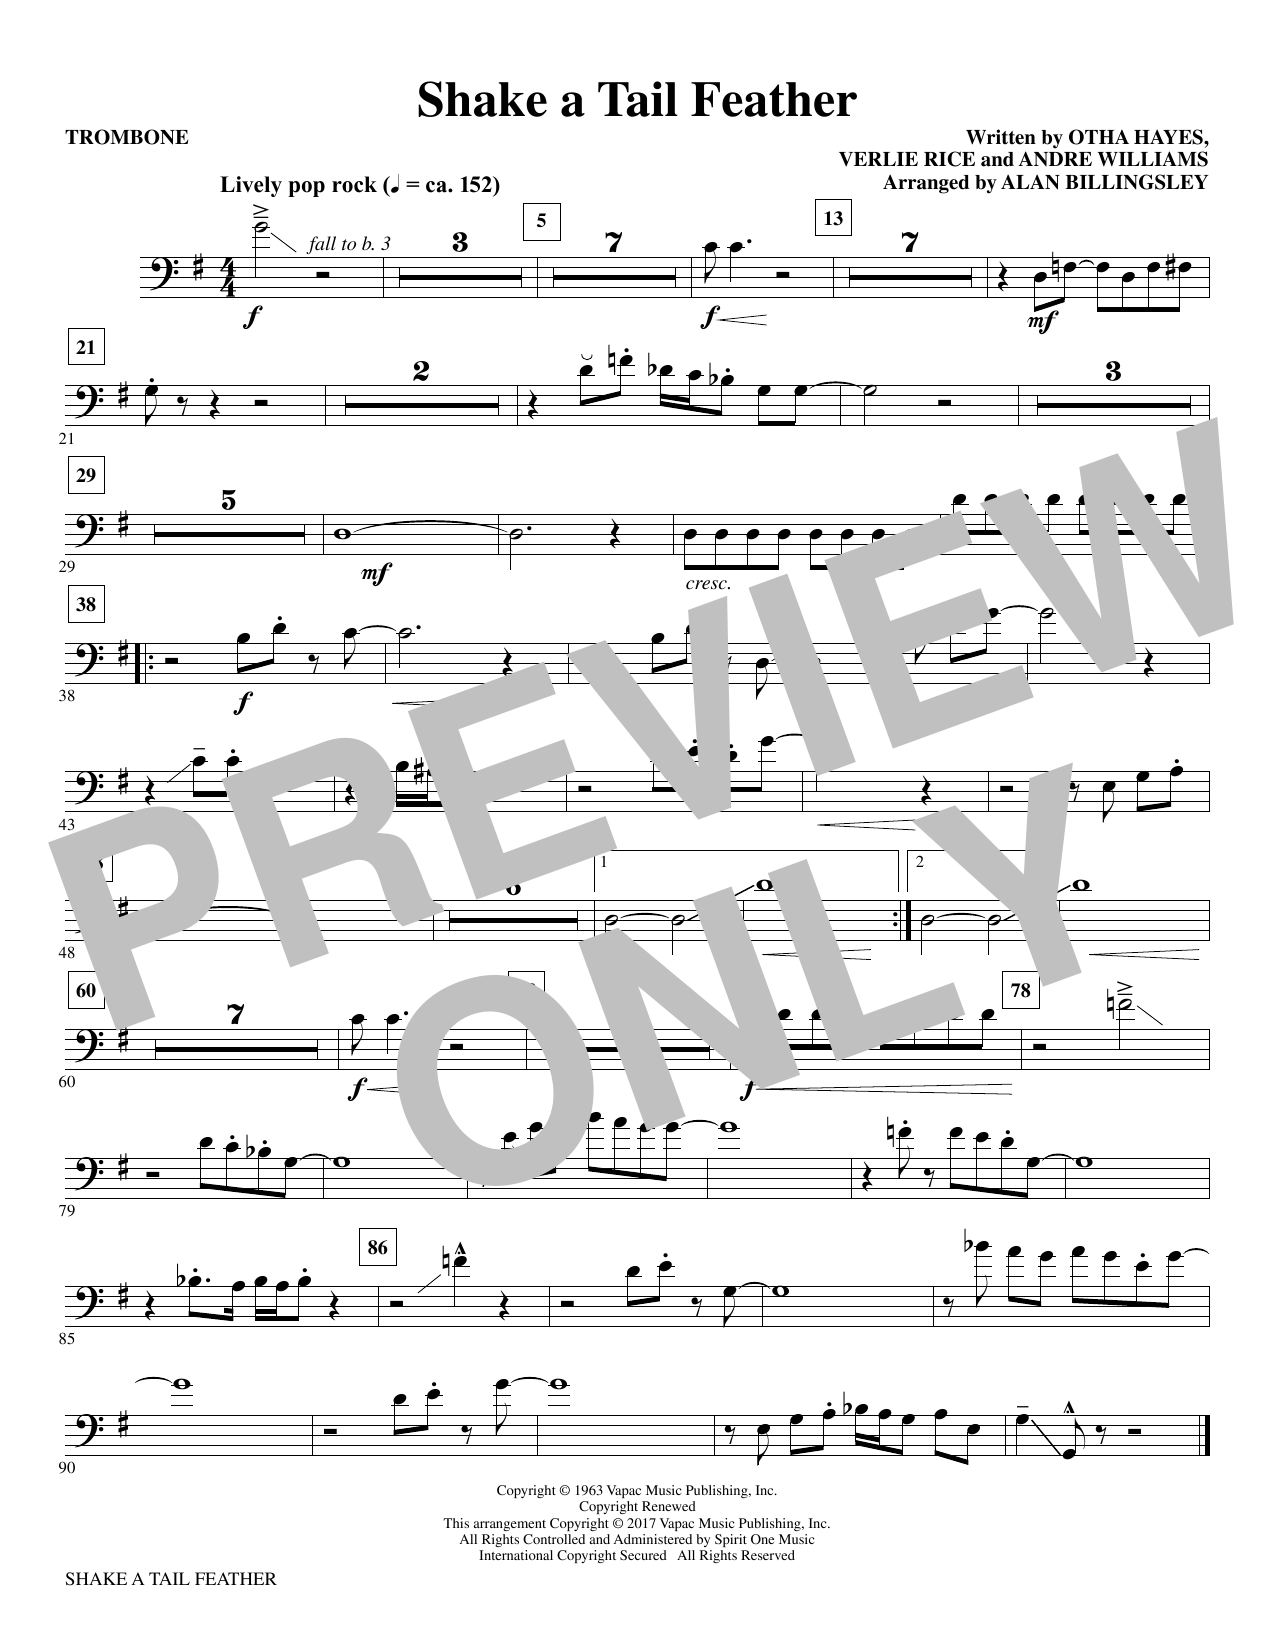 Download Alan Billingsley 'Shake a Tail Feather - Trombone' Digital Sheet Music Notes & Chords and start playing in minutes